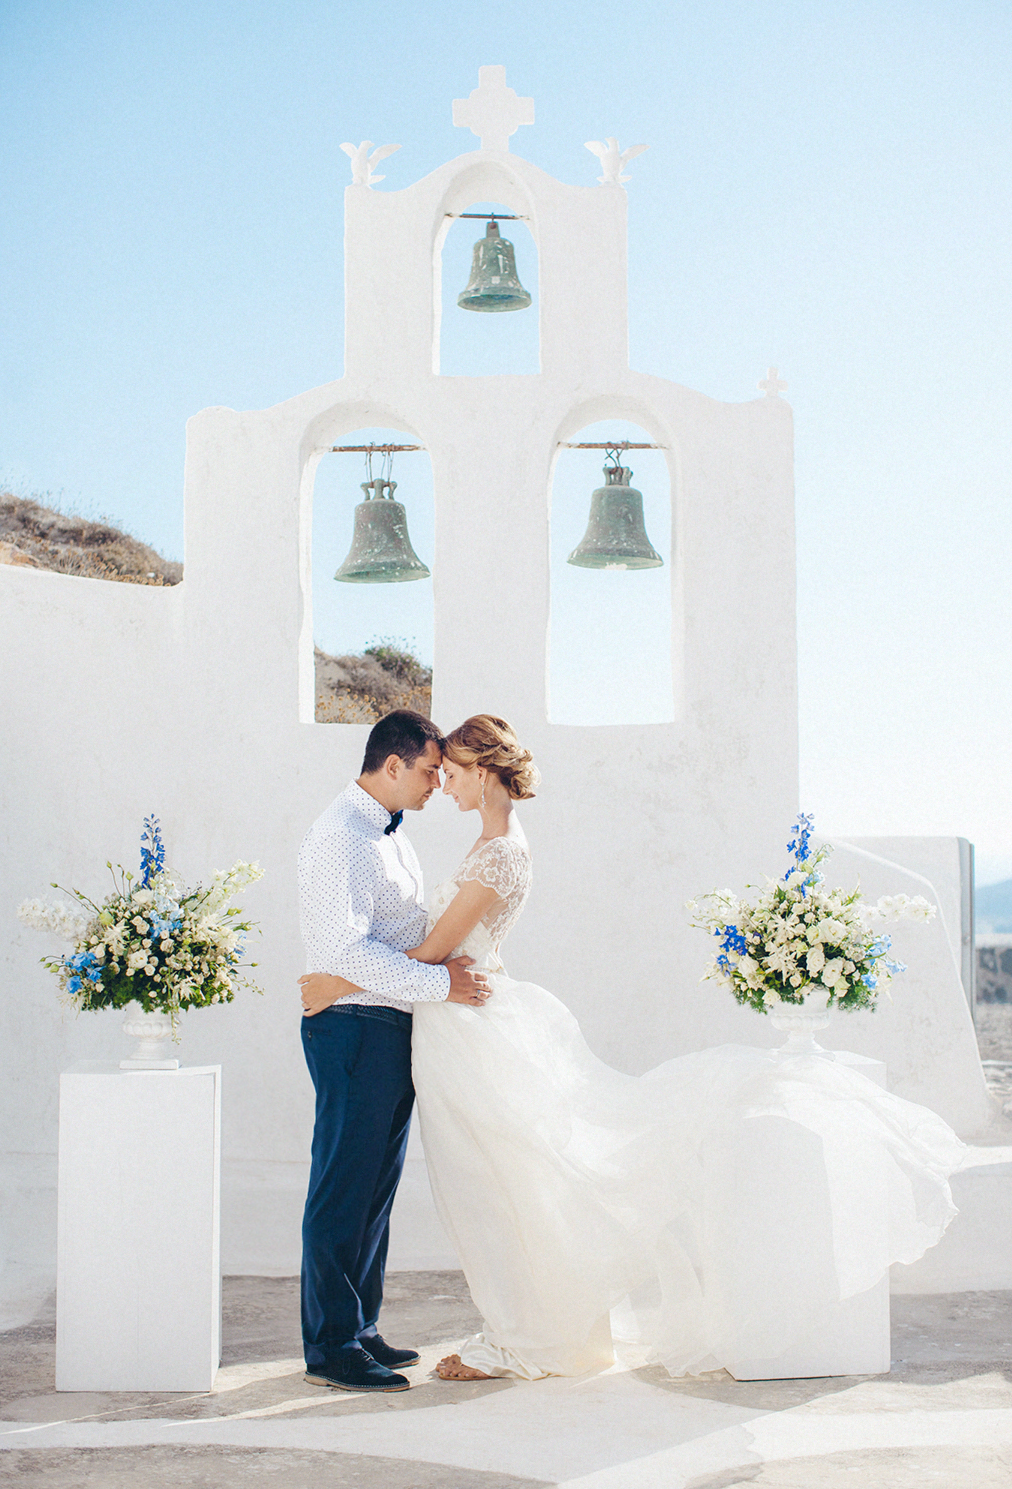 Santorini elopement wedding by Julia Kaptelova Photography